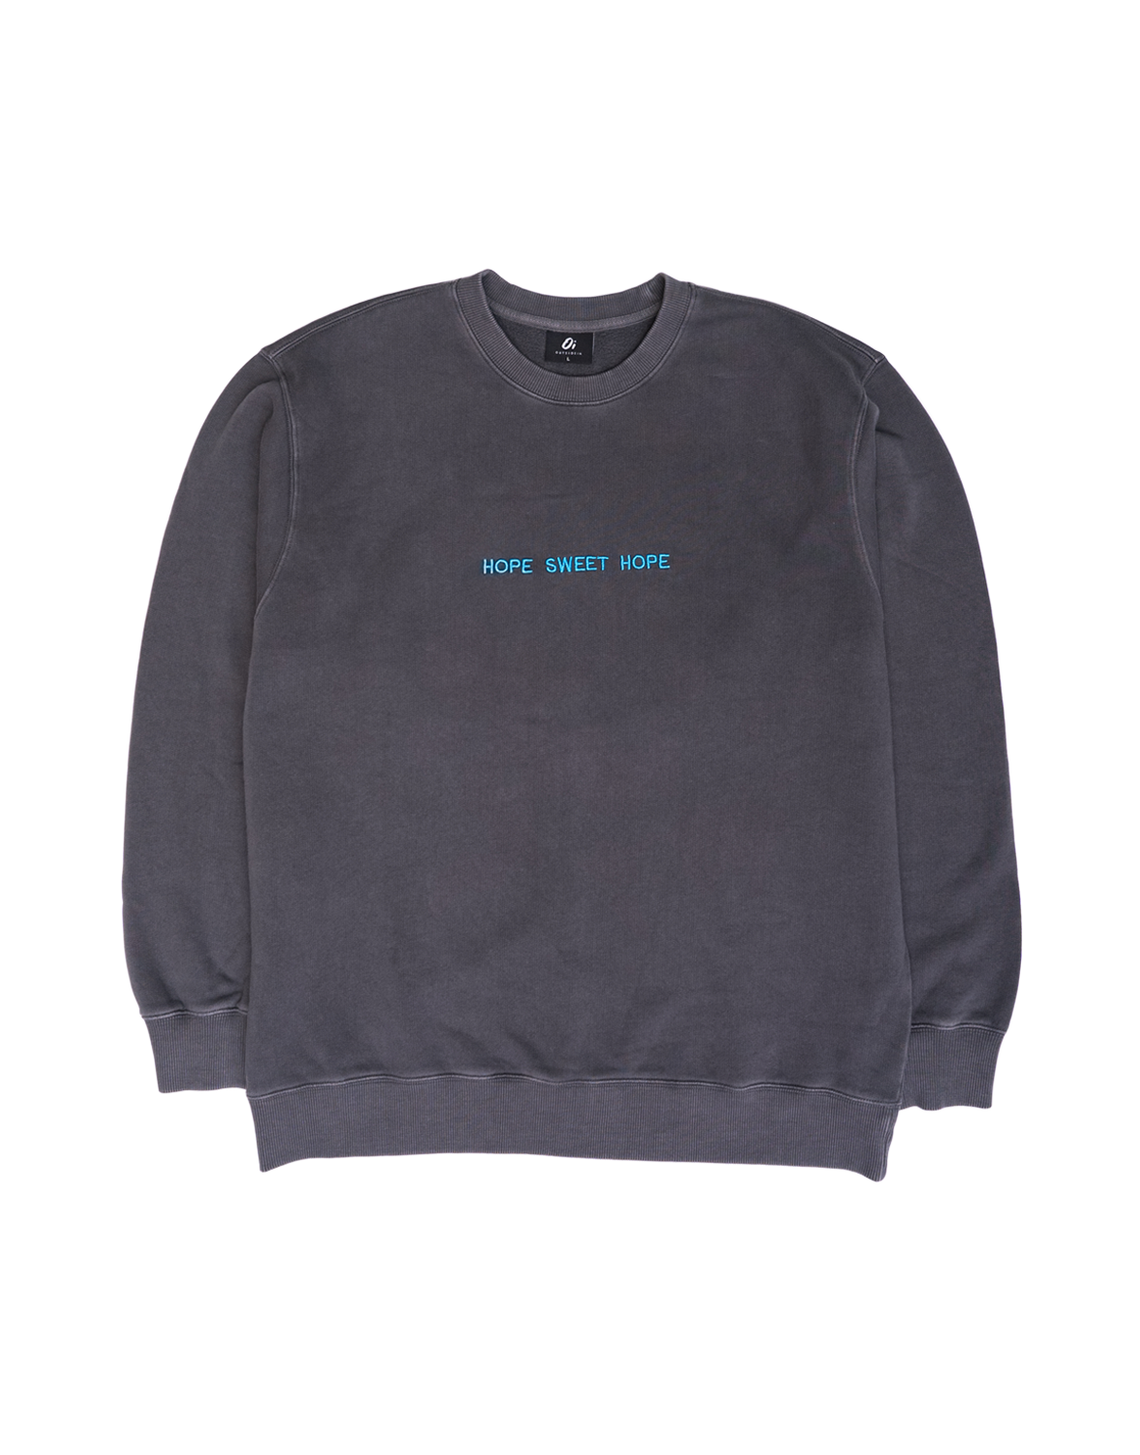 Charcoal Hope Sweet Hope Sweater - OutsideIn